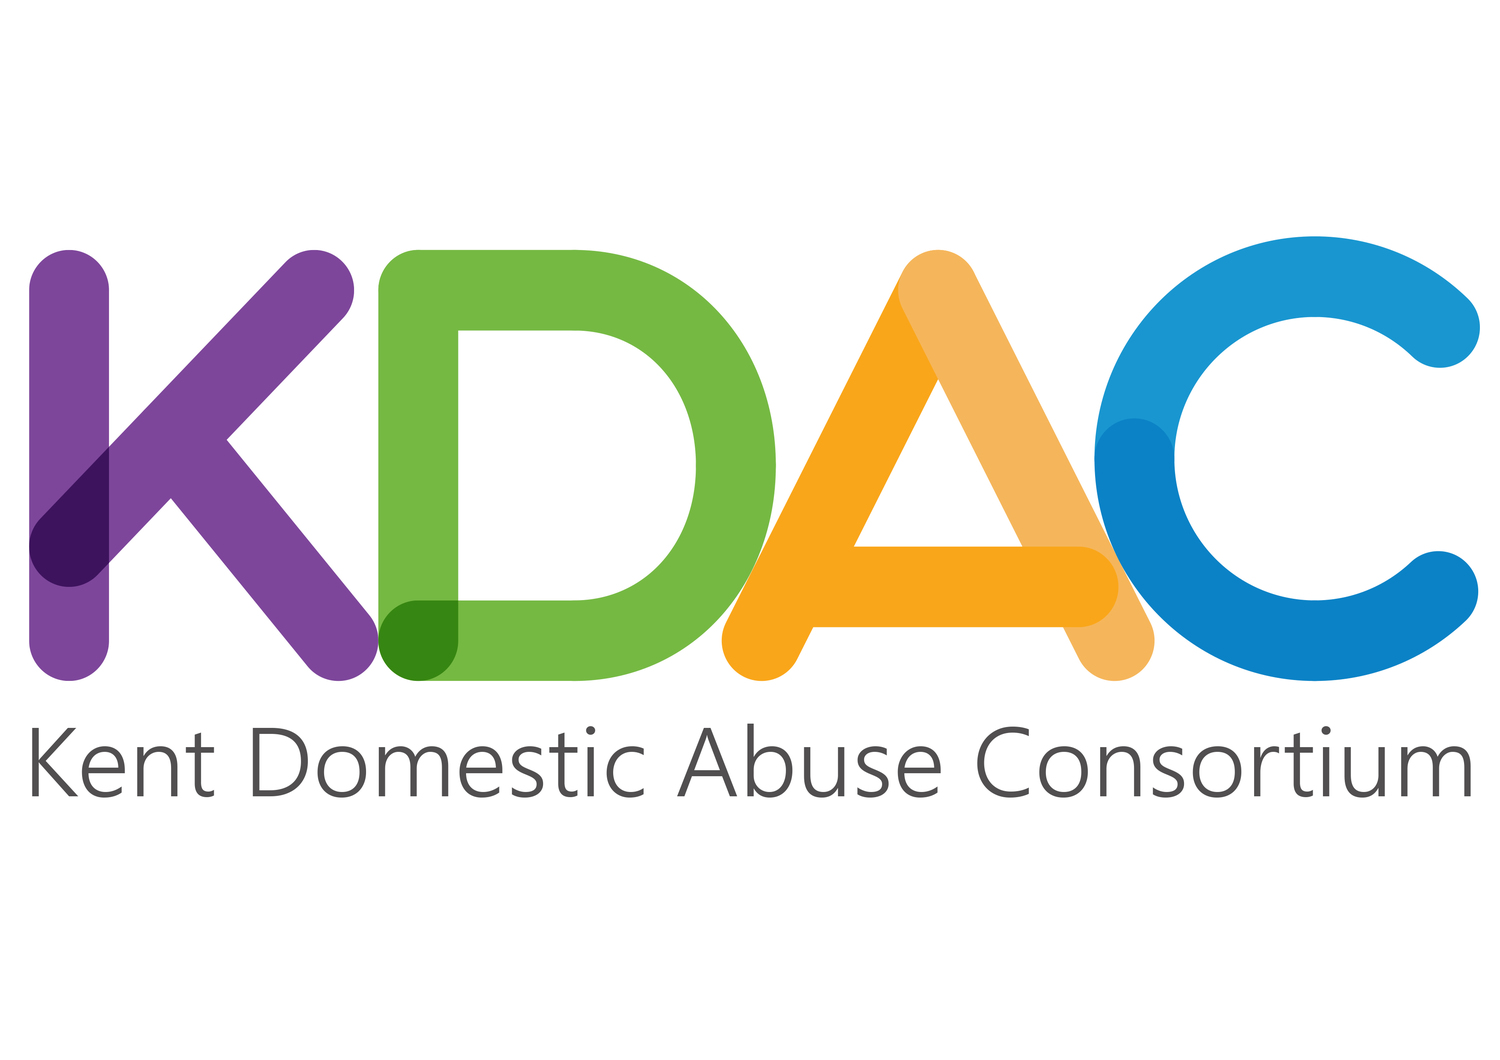 Kent Domestic Abuse Consortium